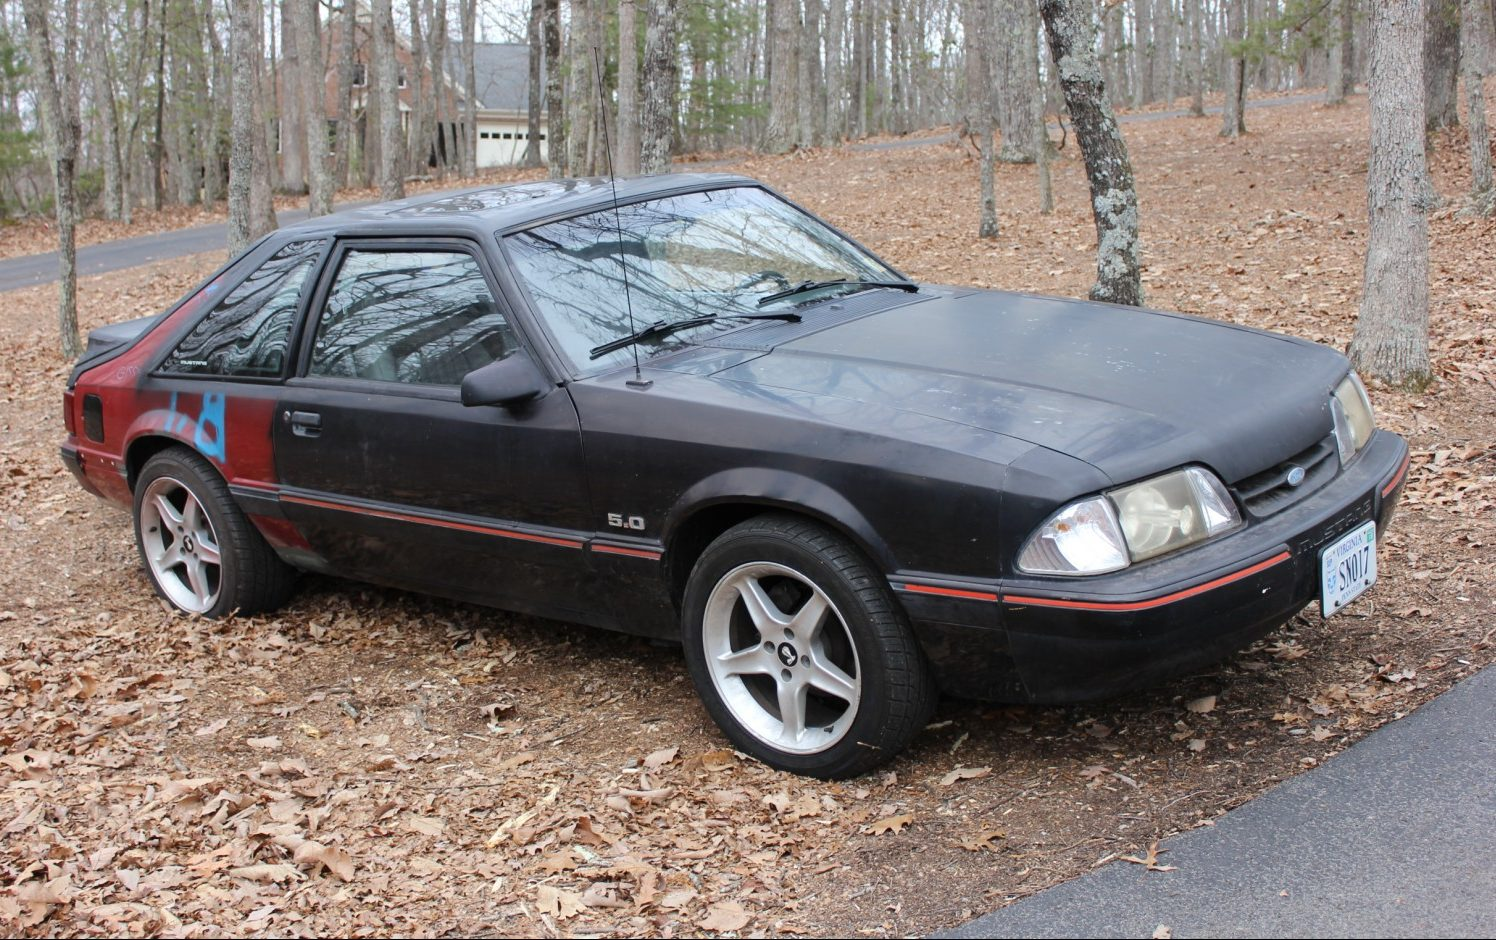 Road Legal Todd S One Owner 232k 1989 Ford Mustang Lx 5 0